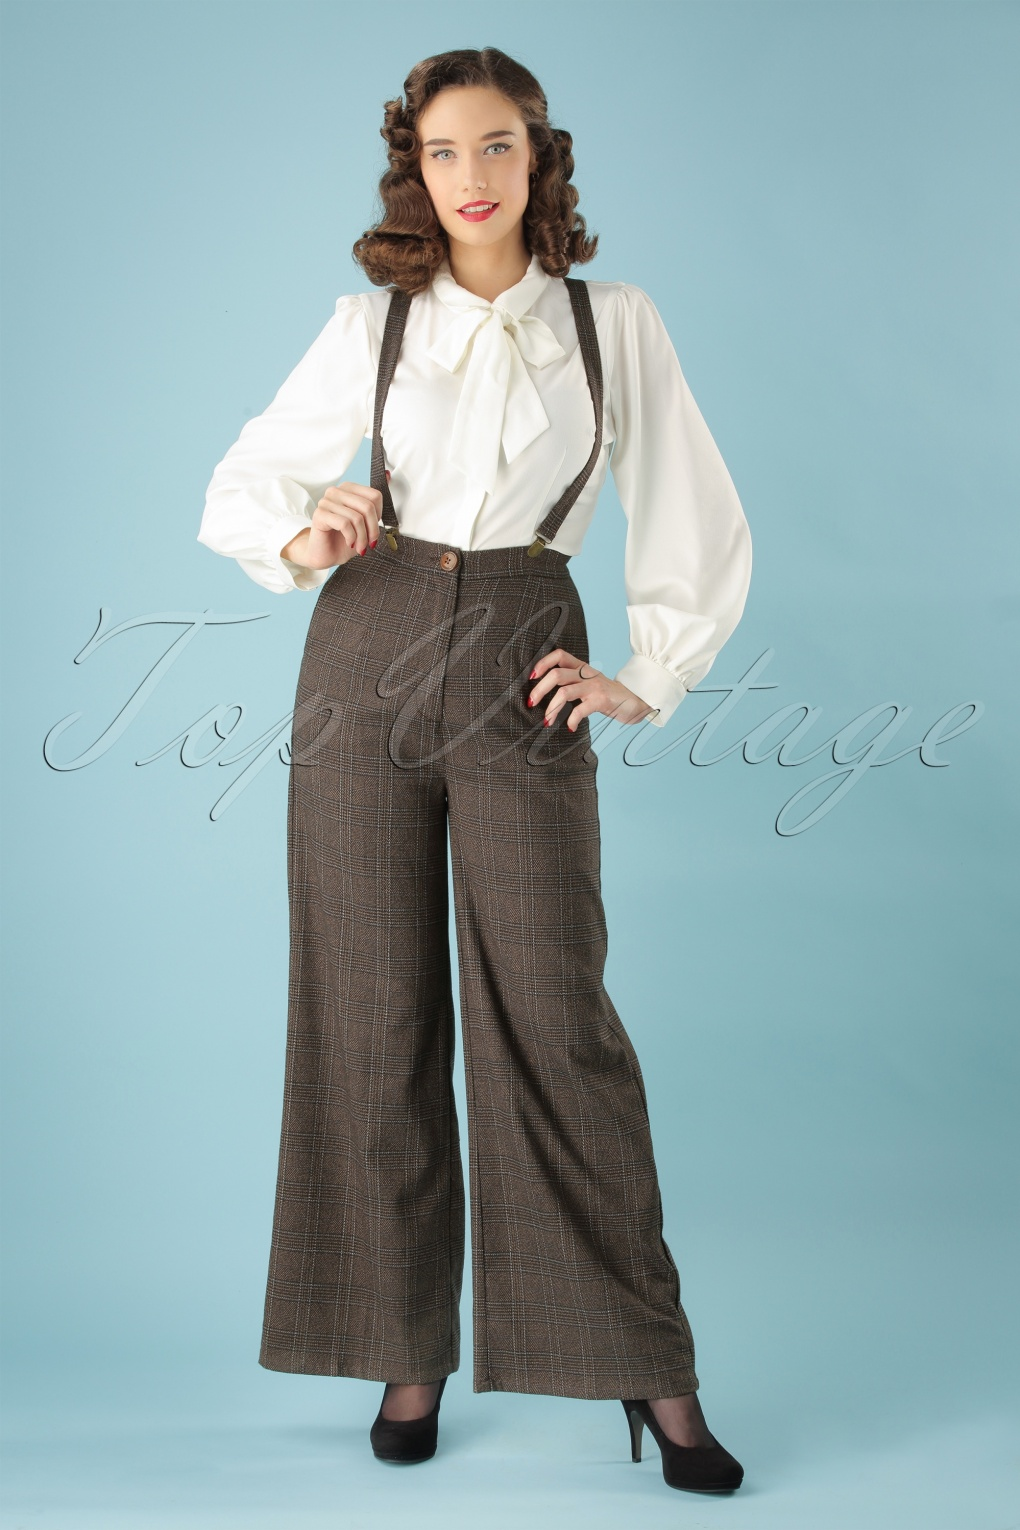 1940s Swing Pants & Sailor Trousers- Wide Leg, High Waist 40s Glinda Librarian Check Trousers in Brown £40.12 AT vintagedancer.com